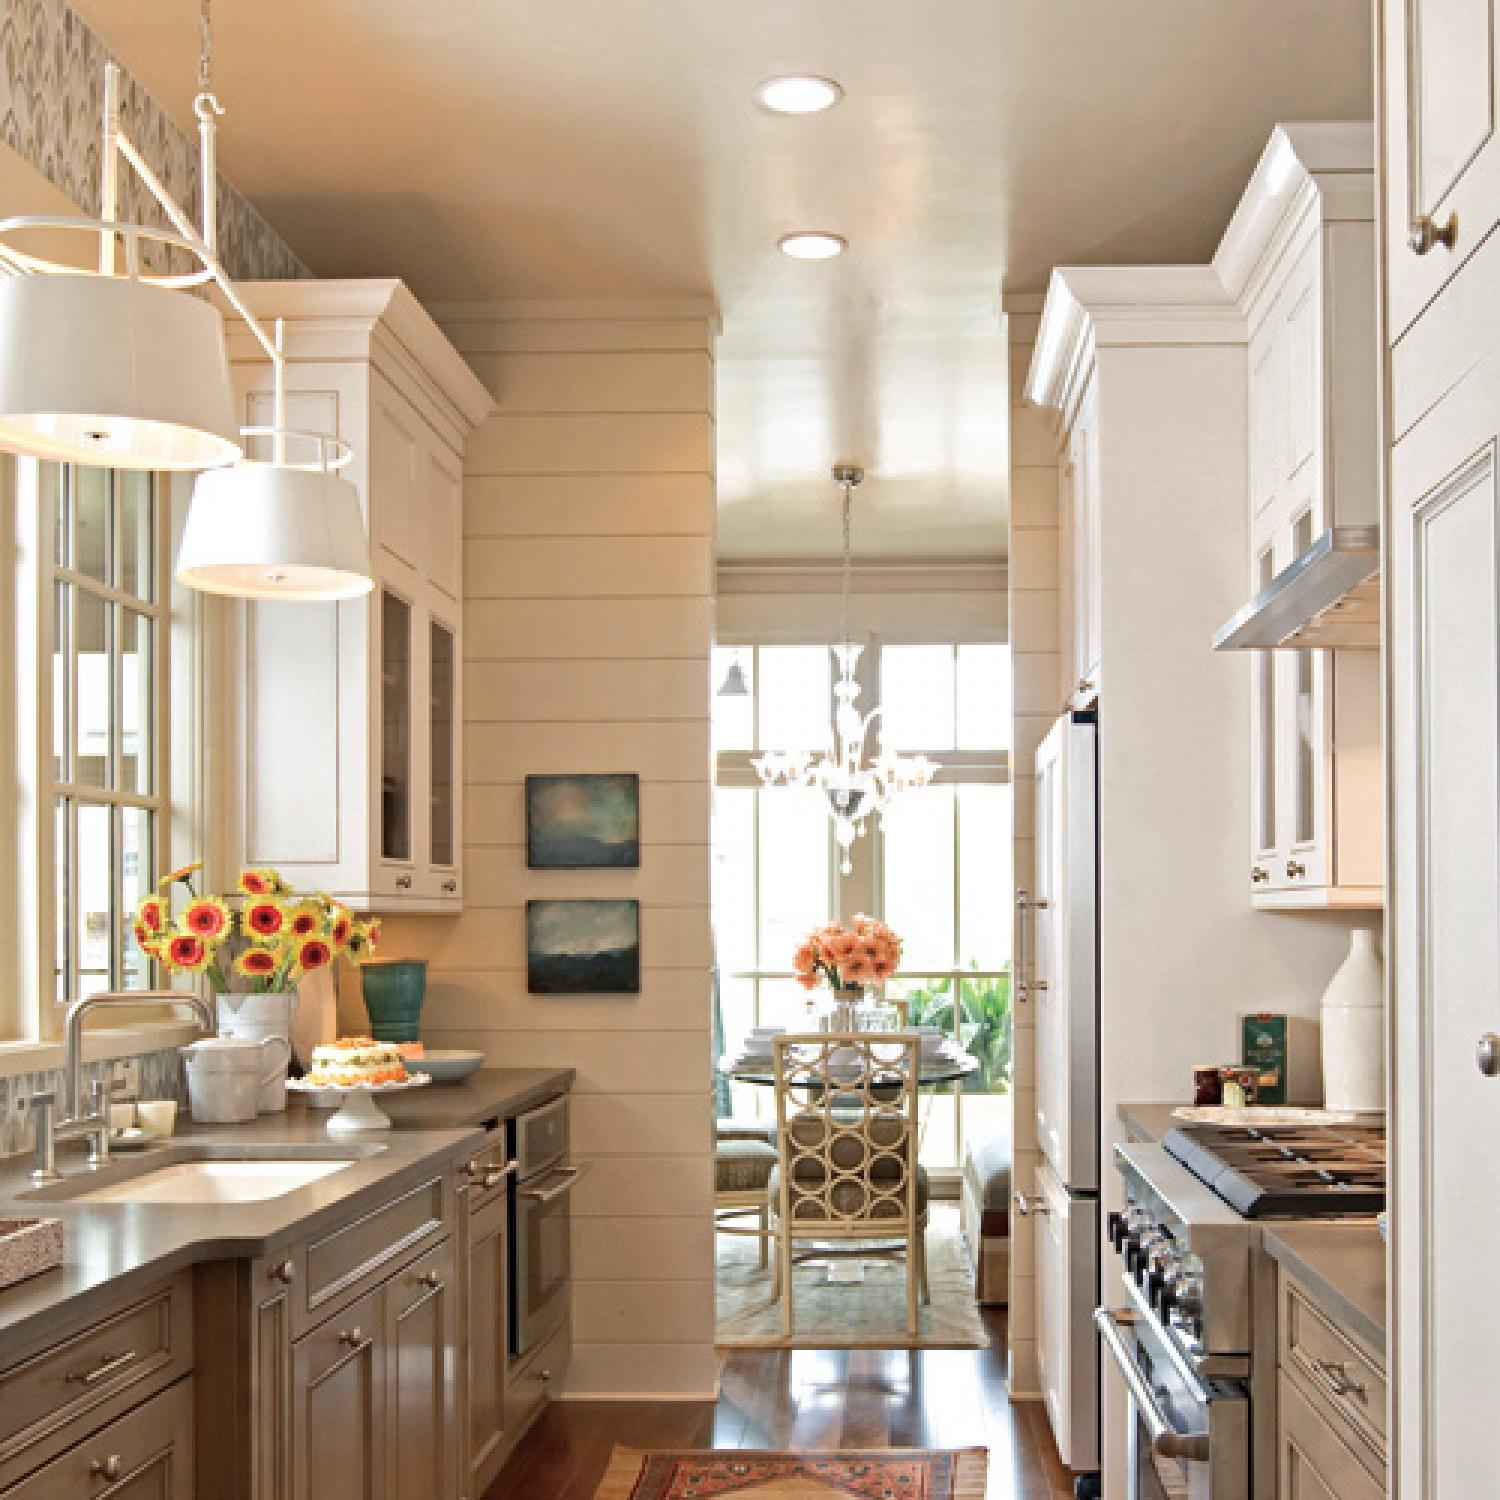 How To Design A Small Kitchen Layout House Designer Today •